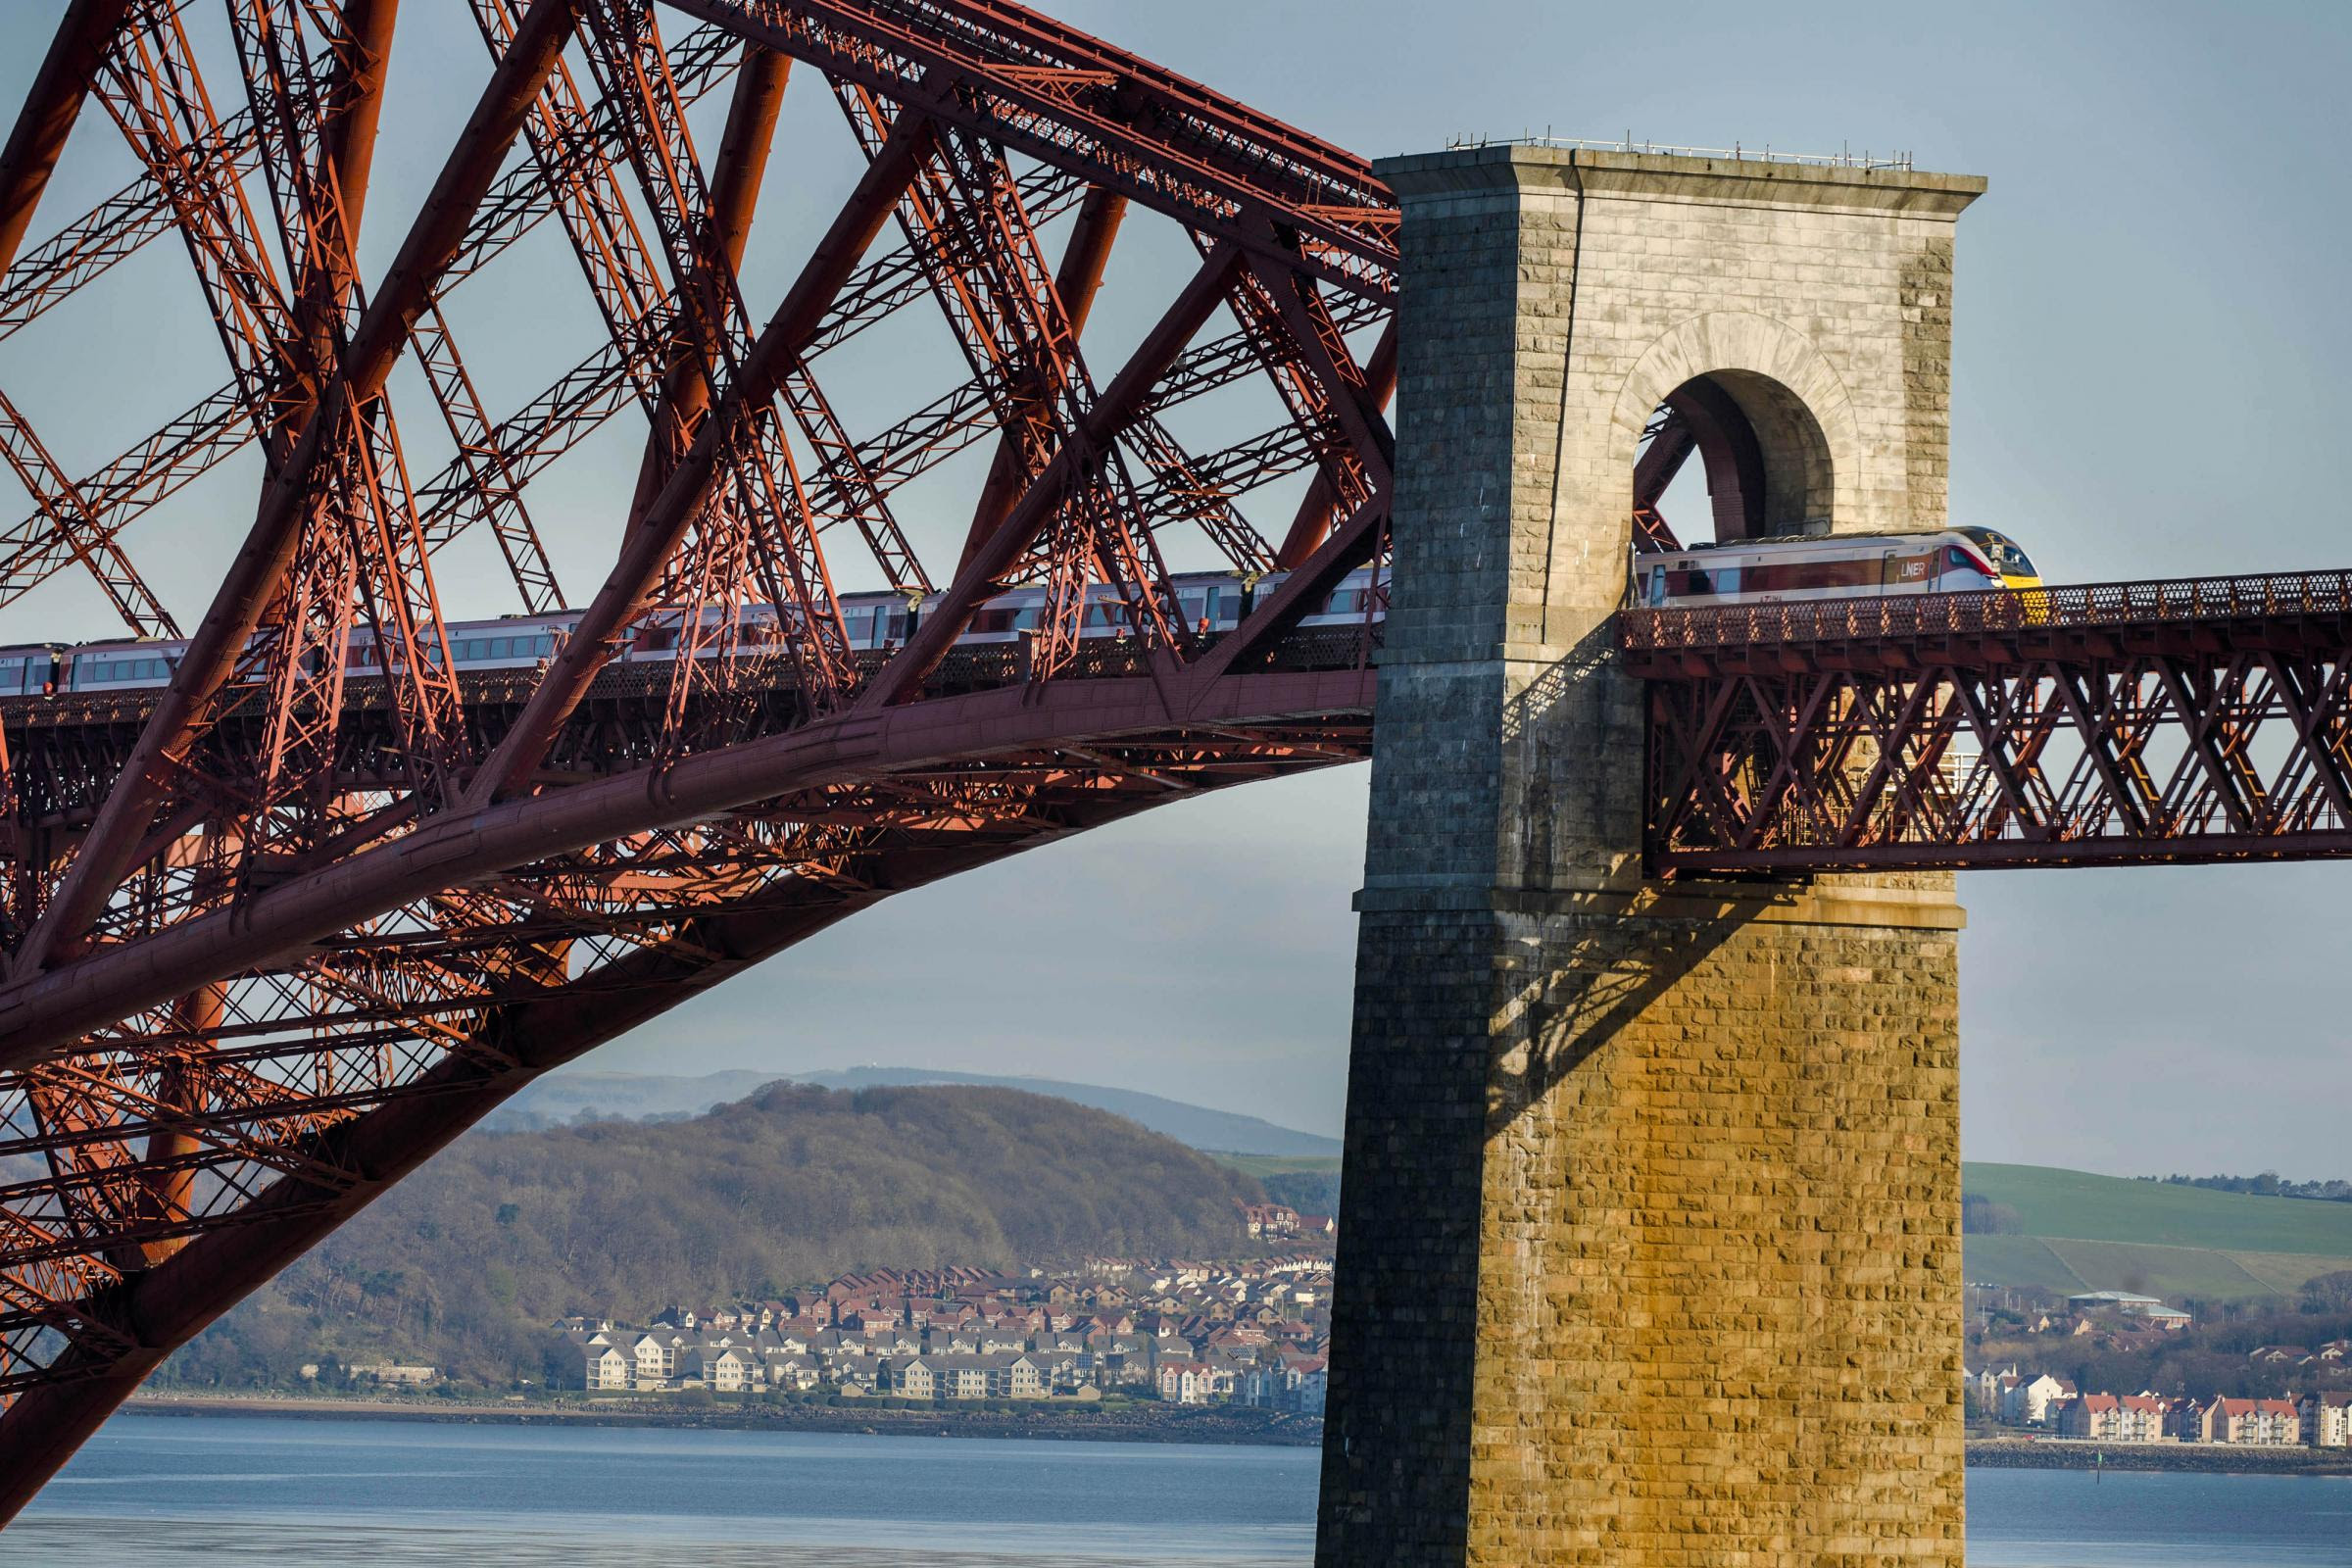 UK Government wants to increase tourism to Scotland with new rail scheme